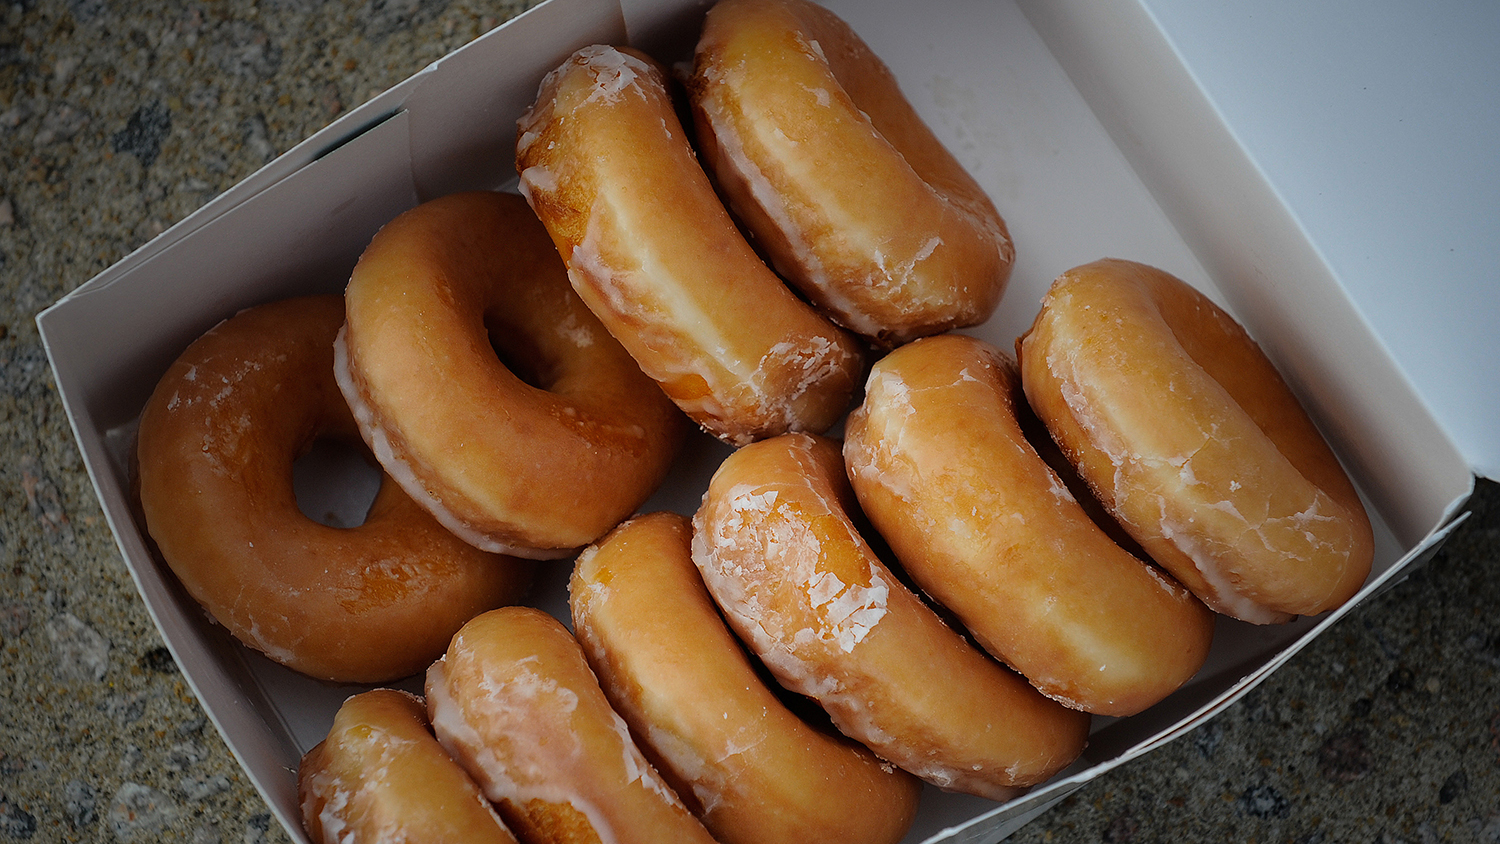 A box of Krispy Kreme doughnuts during the Krispy Kreme Challenge